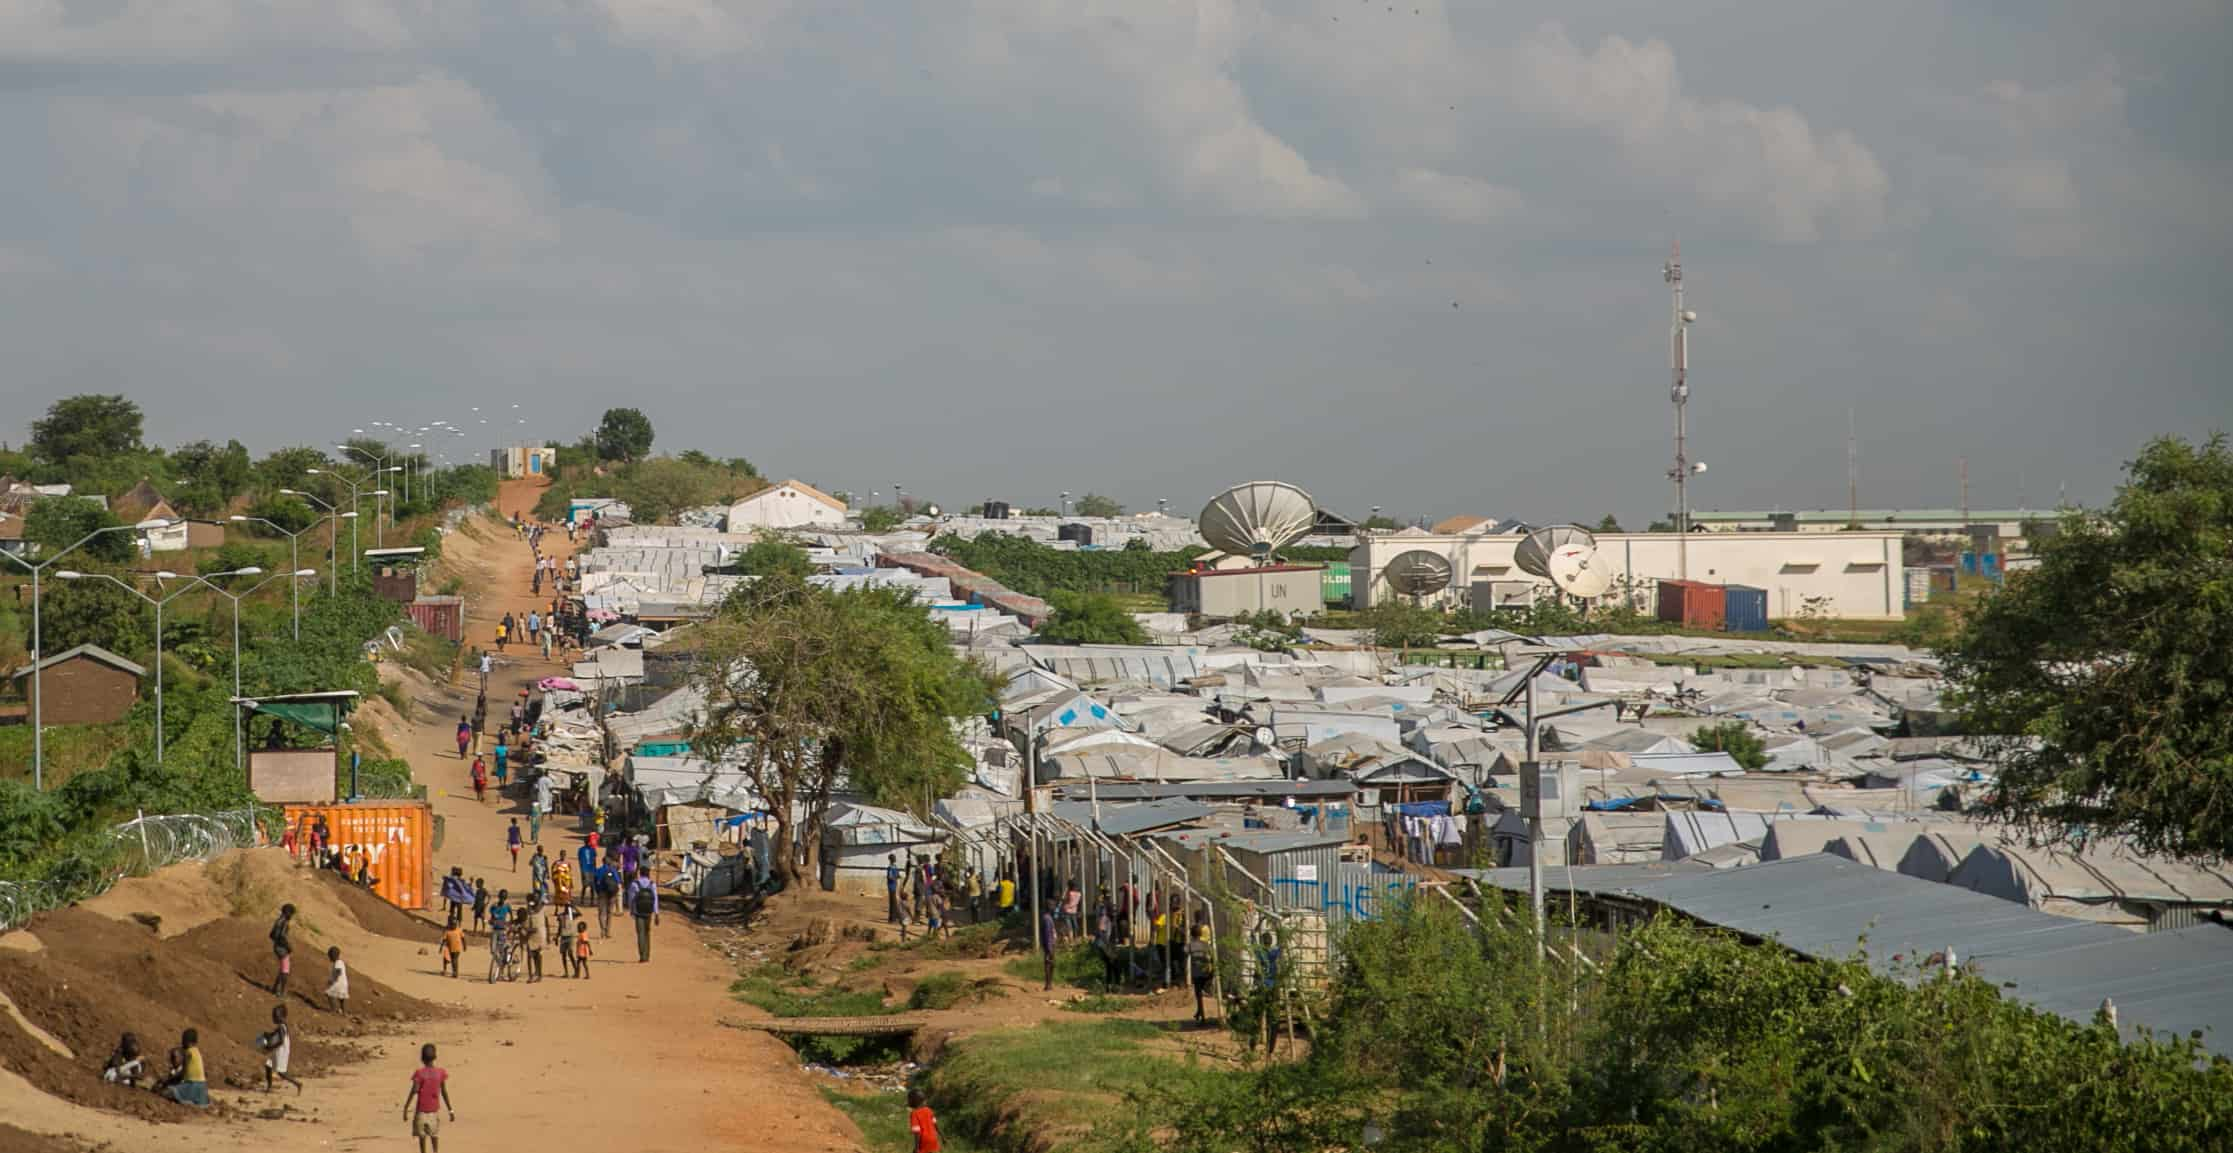 View of a refugee camp.